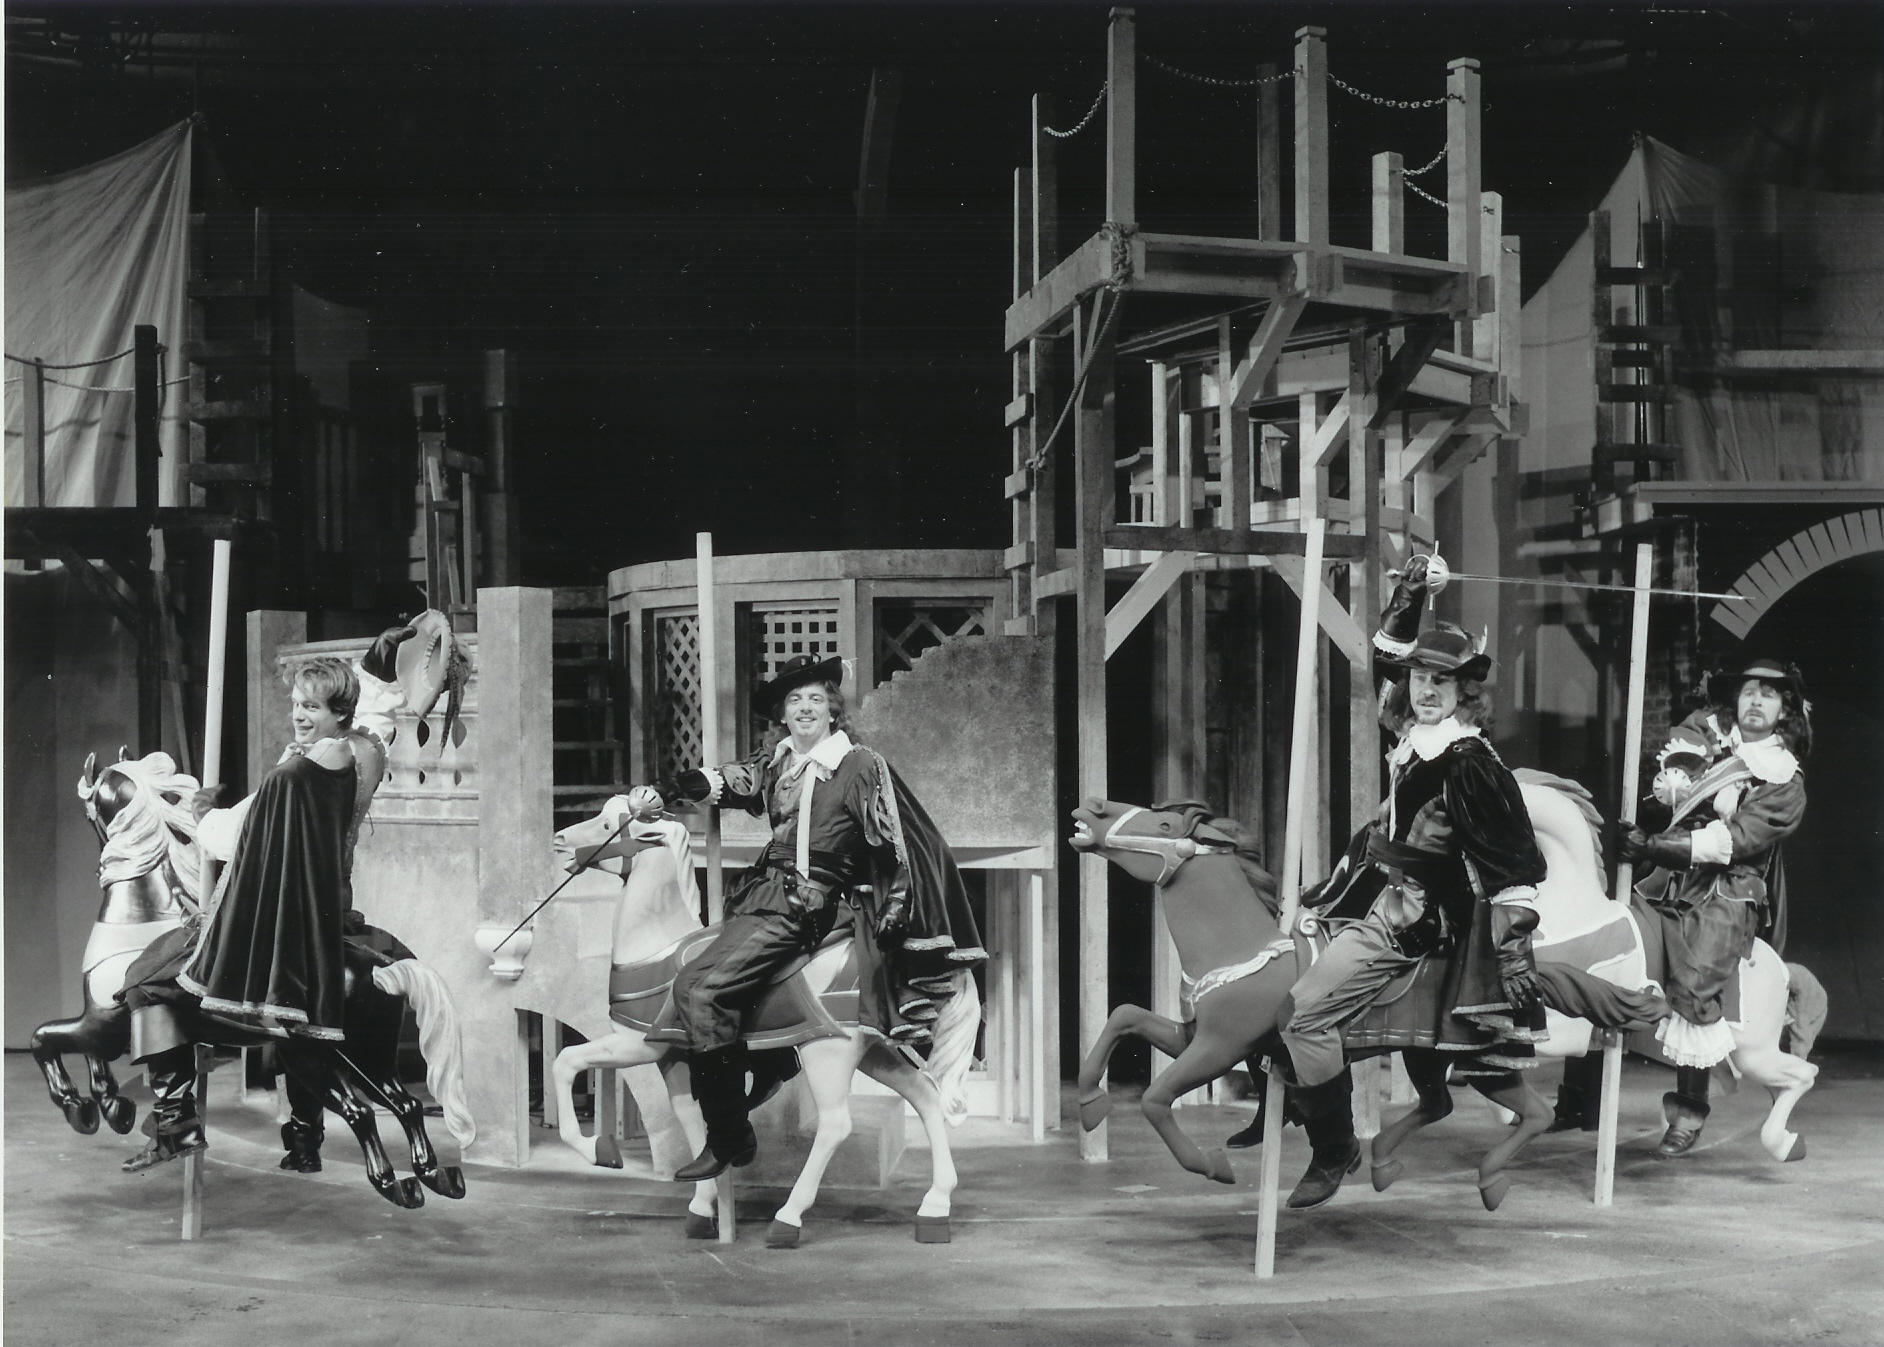 Timothy Altmeyer, Christopher Mixon, Matthew Loney and Richard A. Schrot The Three Musketeers 1995-1996